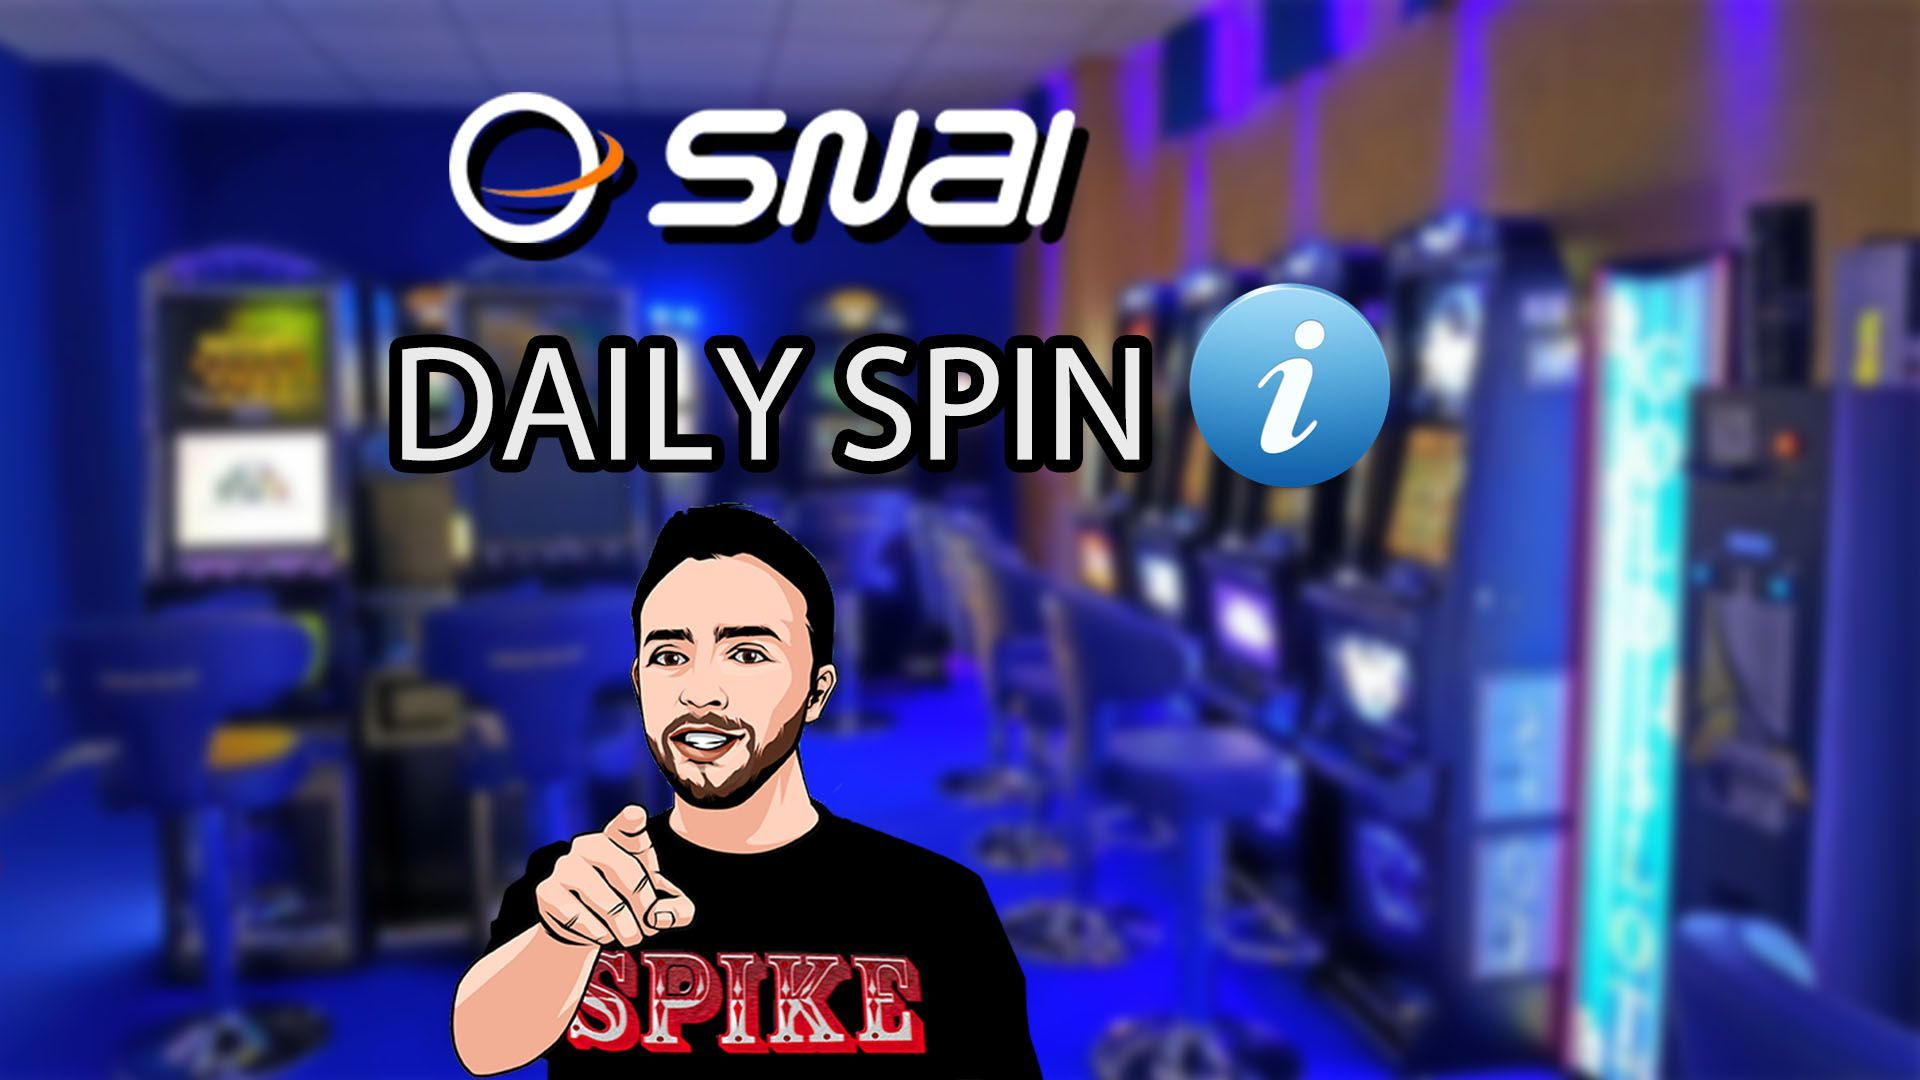 Card Articolo Snai Daily Spin SPIKE